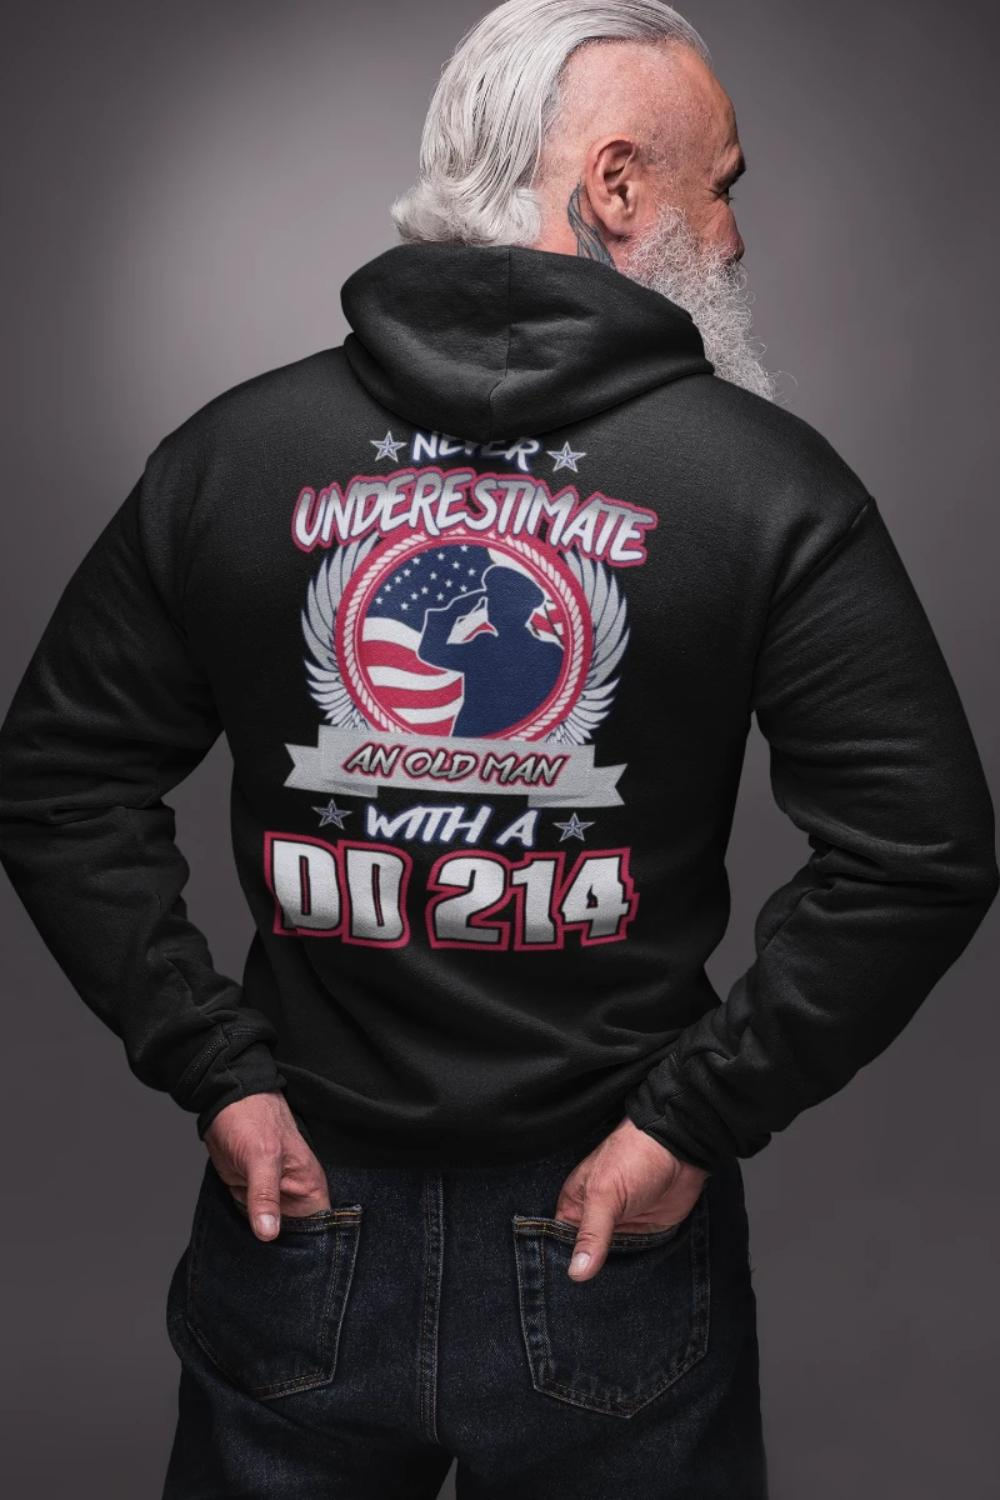 Never Underestimate An Old Man With DD 214 T-Shirt, Hoodie, Tank Top - Snappy Creations